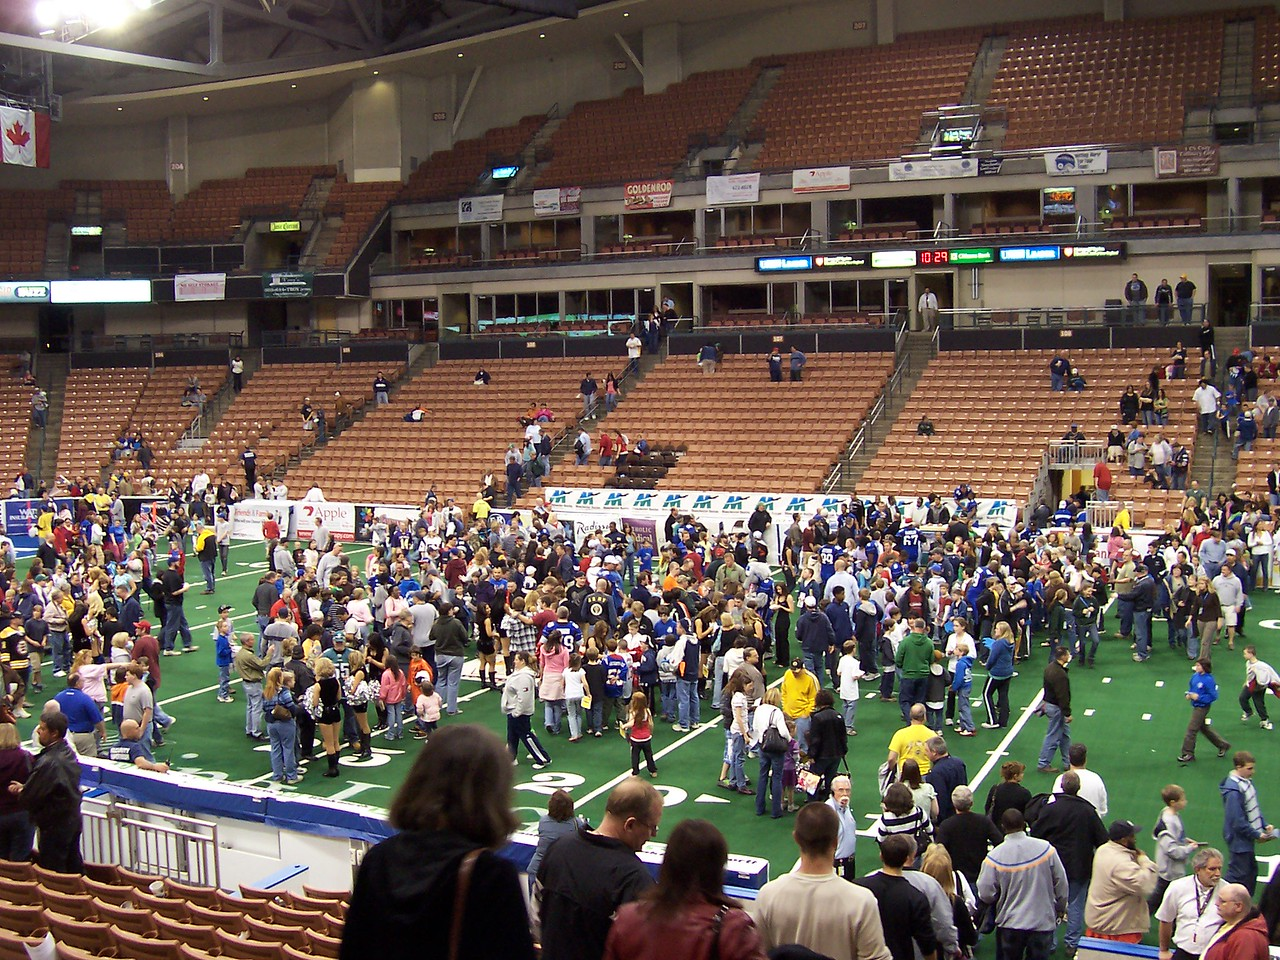 Fans on the field for the post-game photo and autograph session.